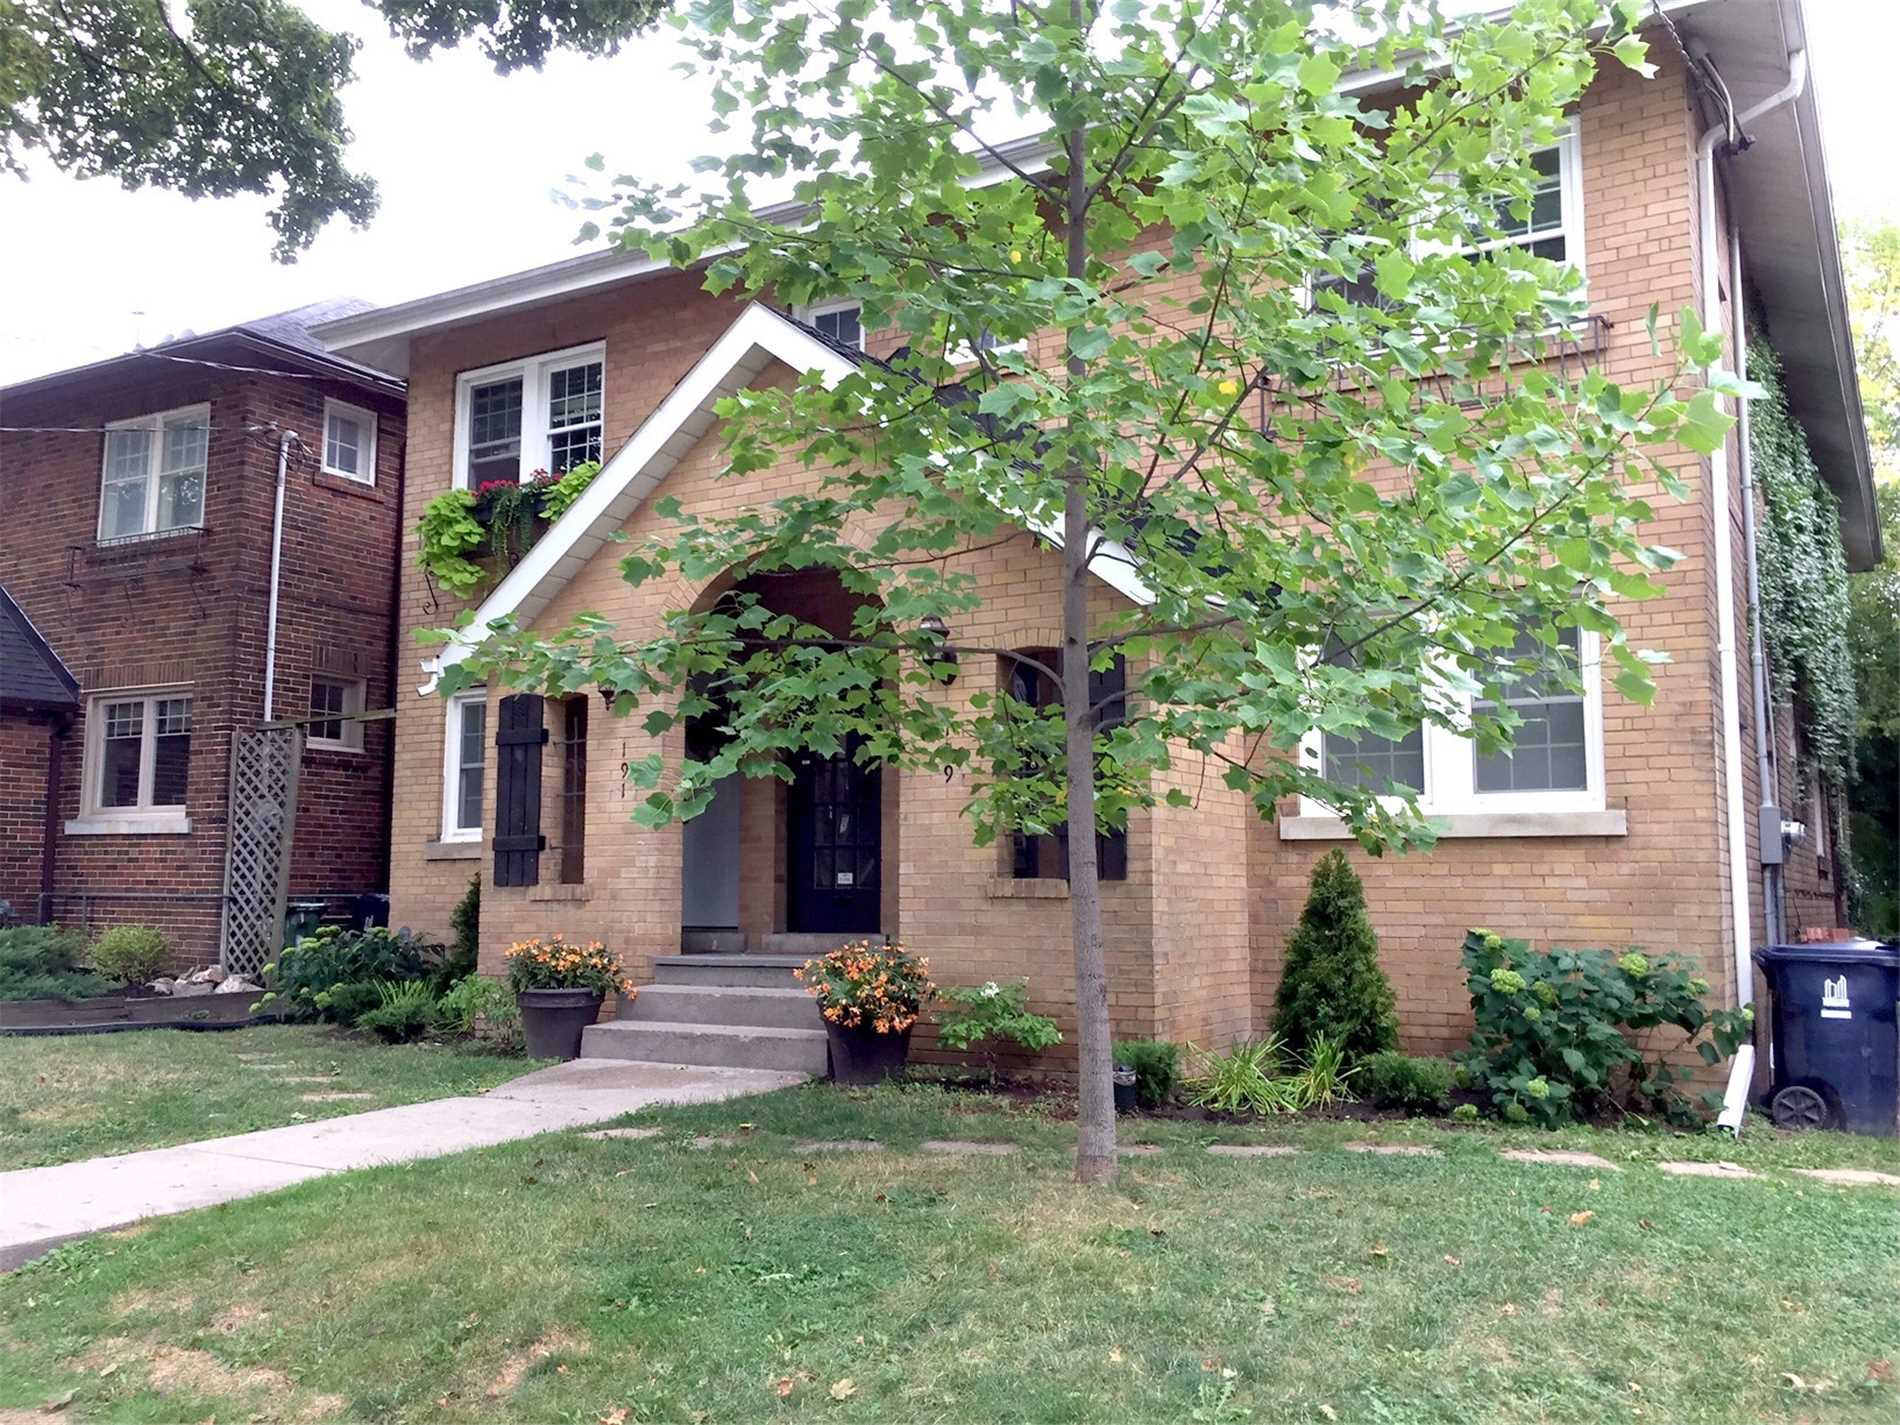 Detached house For Sale In Toronto - 189/191 Millwood Rd, Toronto, Ontario, Canada M4S 1J6 , 8 Bedrooms Bedrooms, ,4 BathroomsBathrooms,Detached,For Sale,Millwood